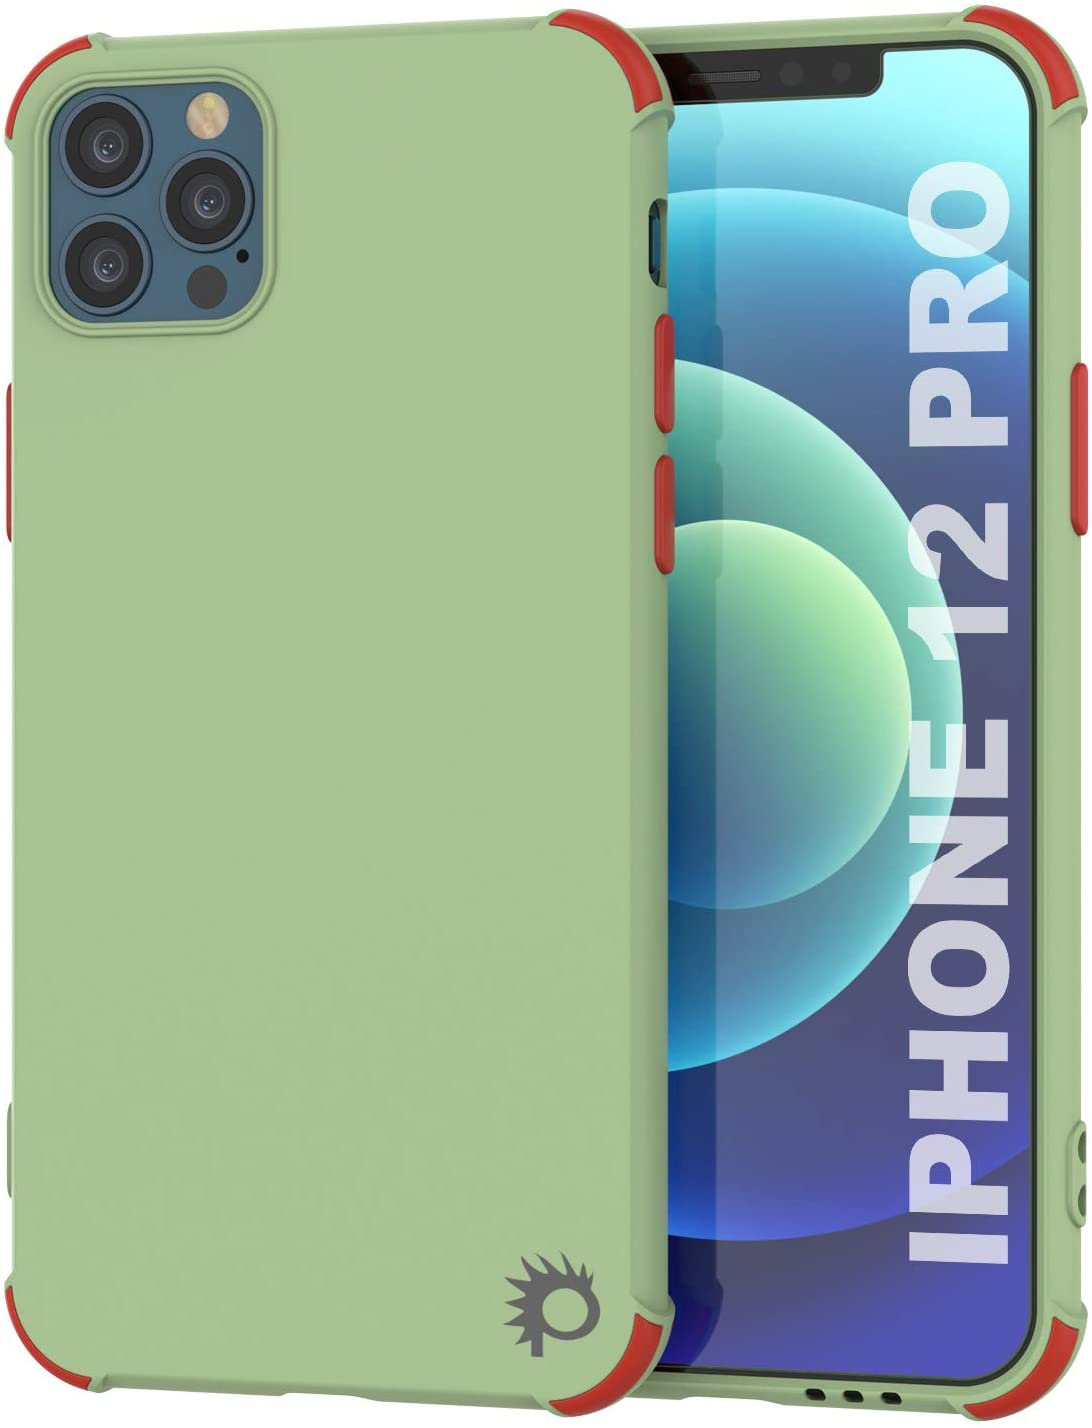 Punkcase Protective & Lightweight TPU Case [Sunshine Series] for iPhone 12 Pro [Light Green]